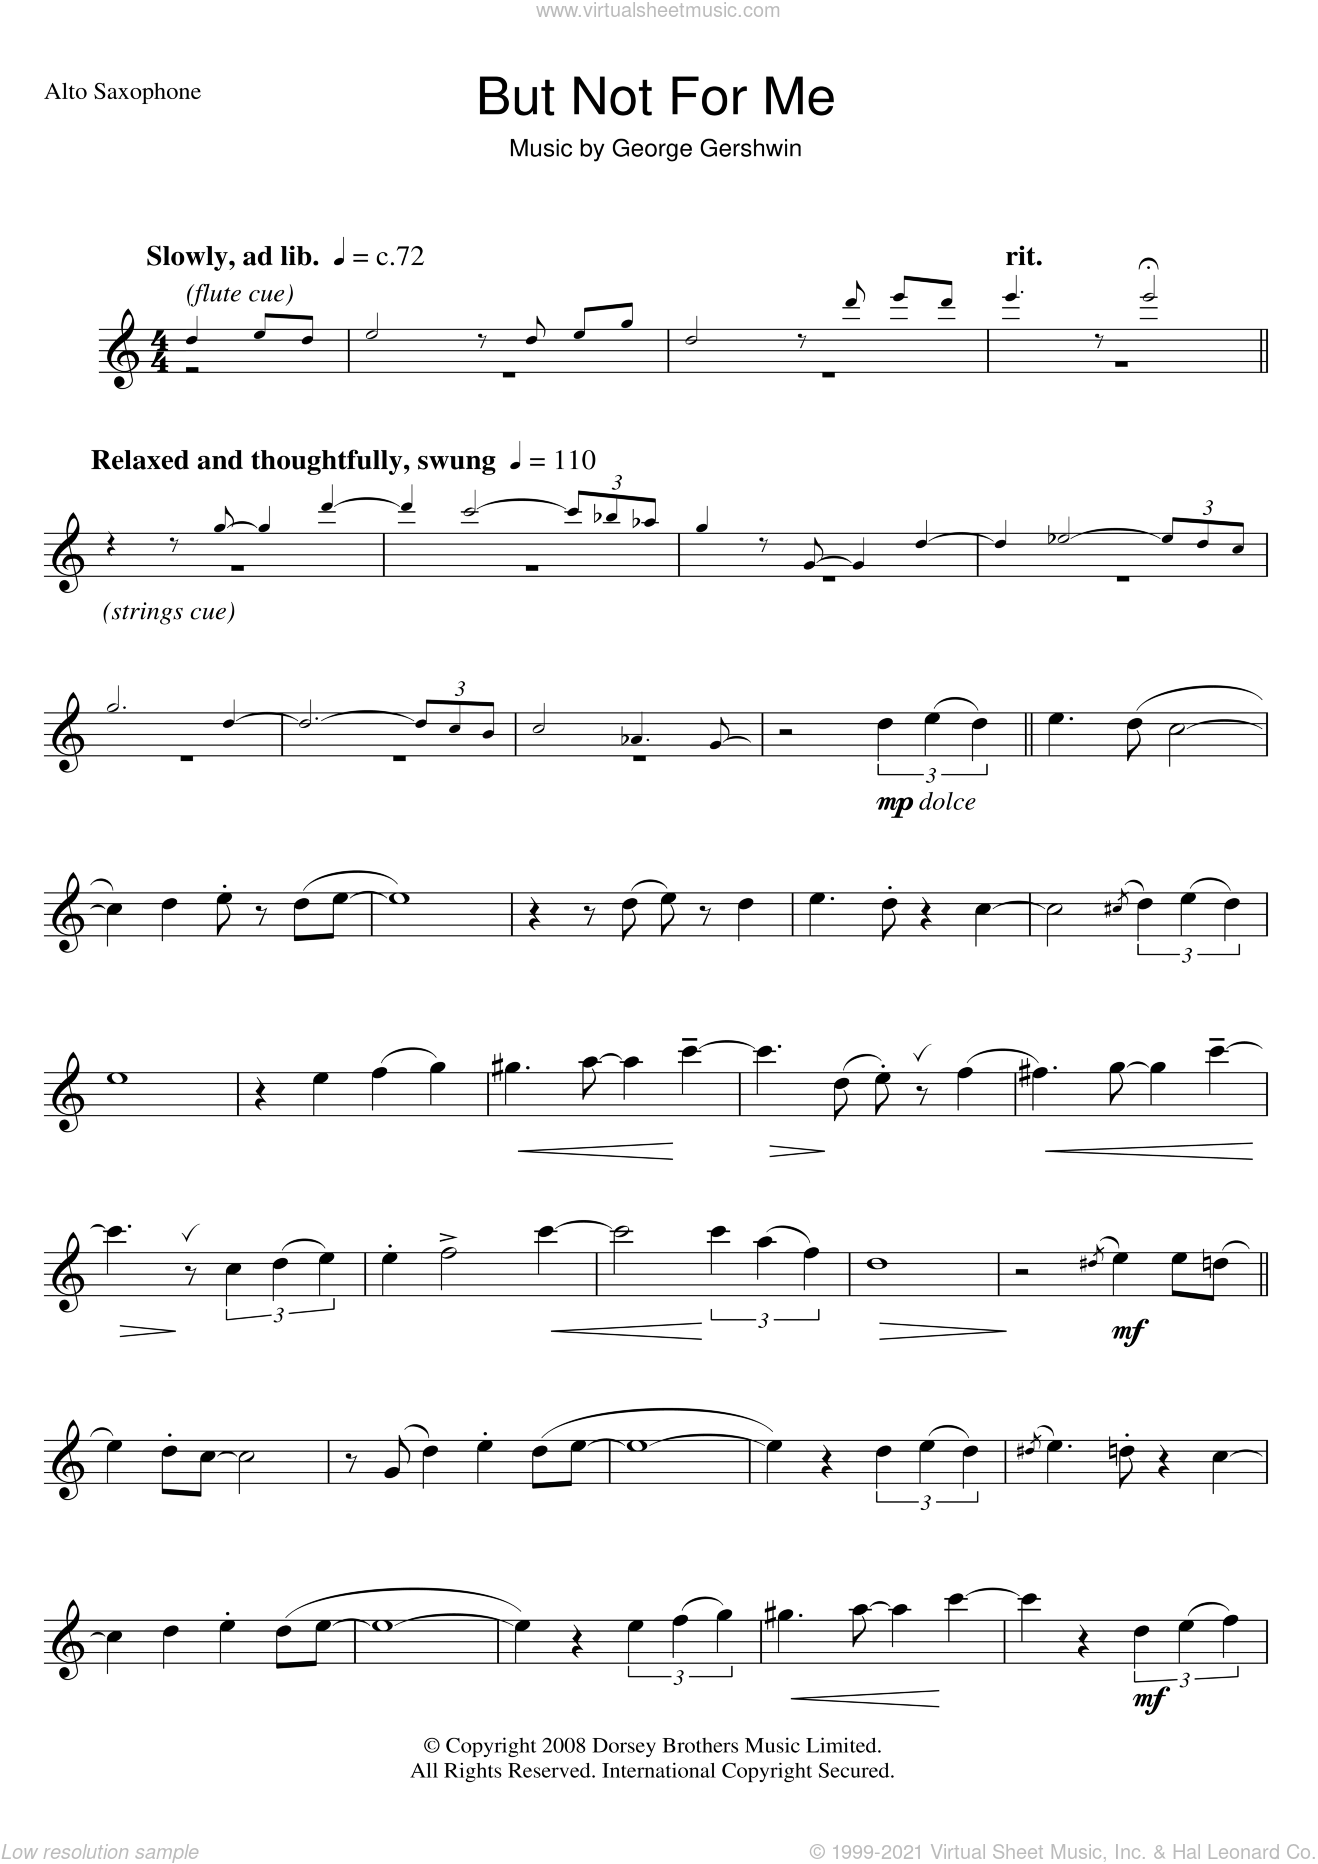 But Not For Me sheet music for alto saxophone solo by George Gershwin, intermediate skill level